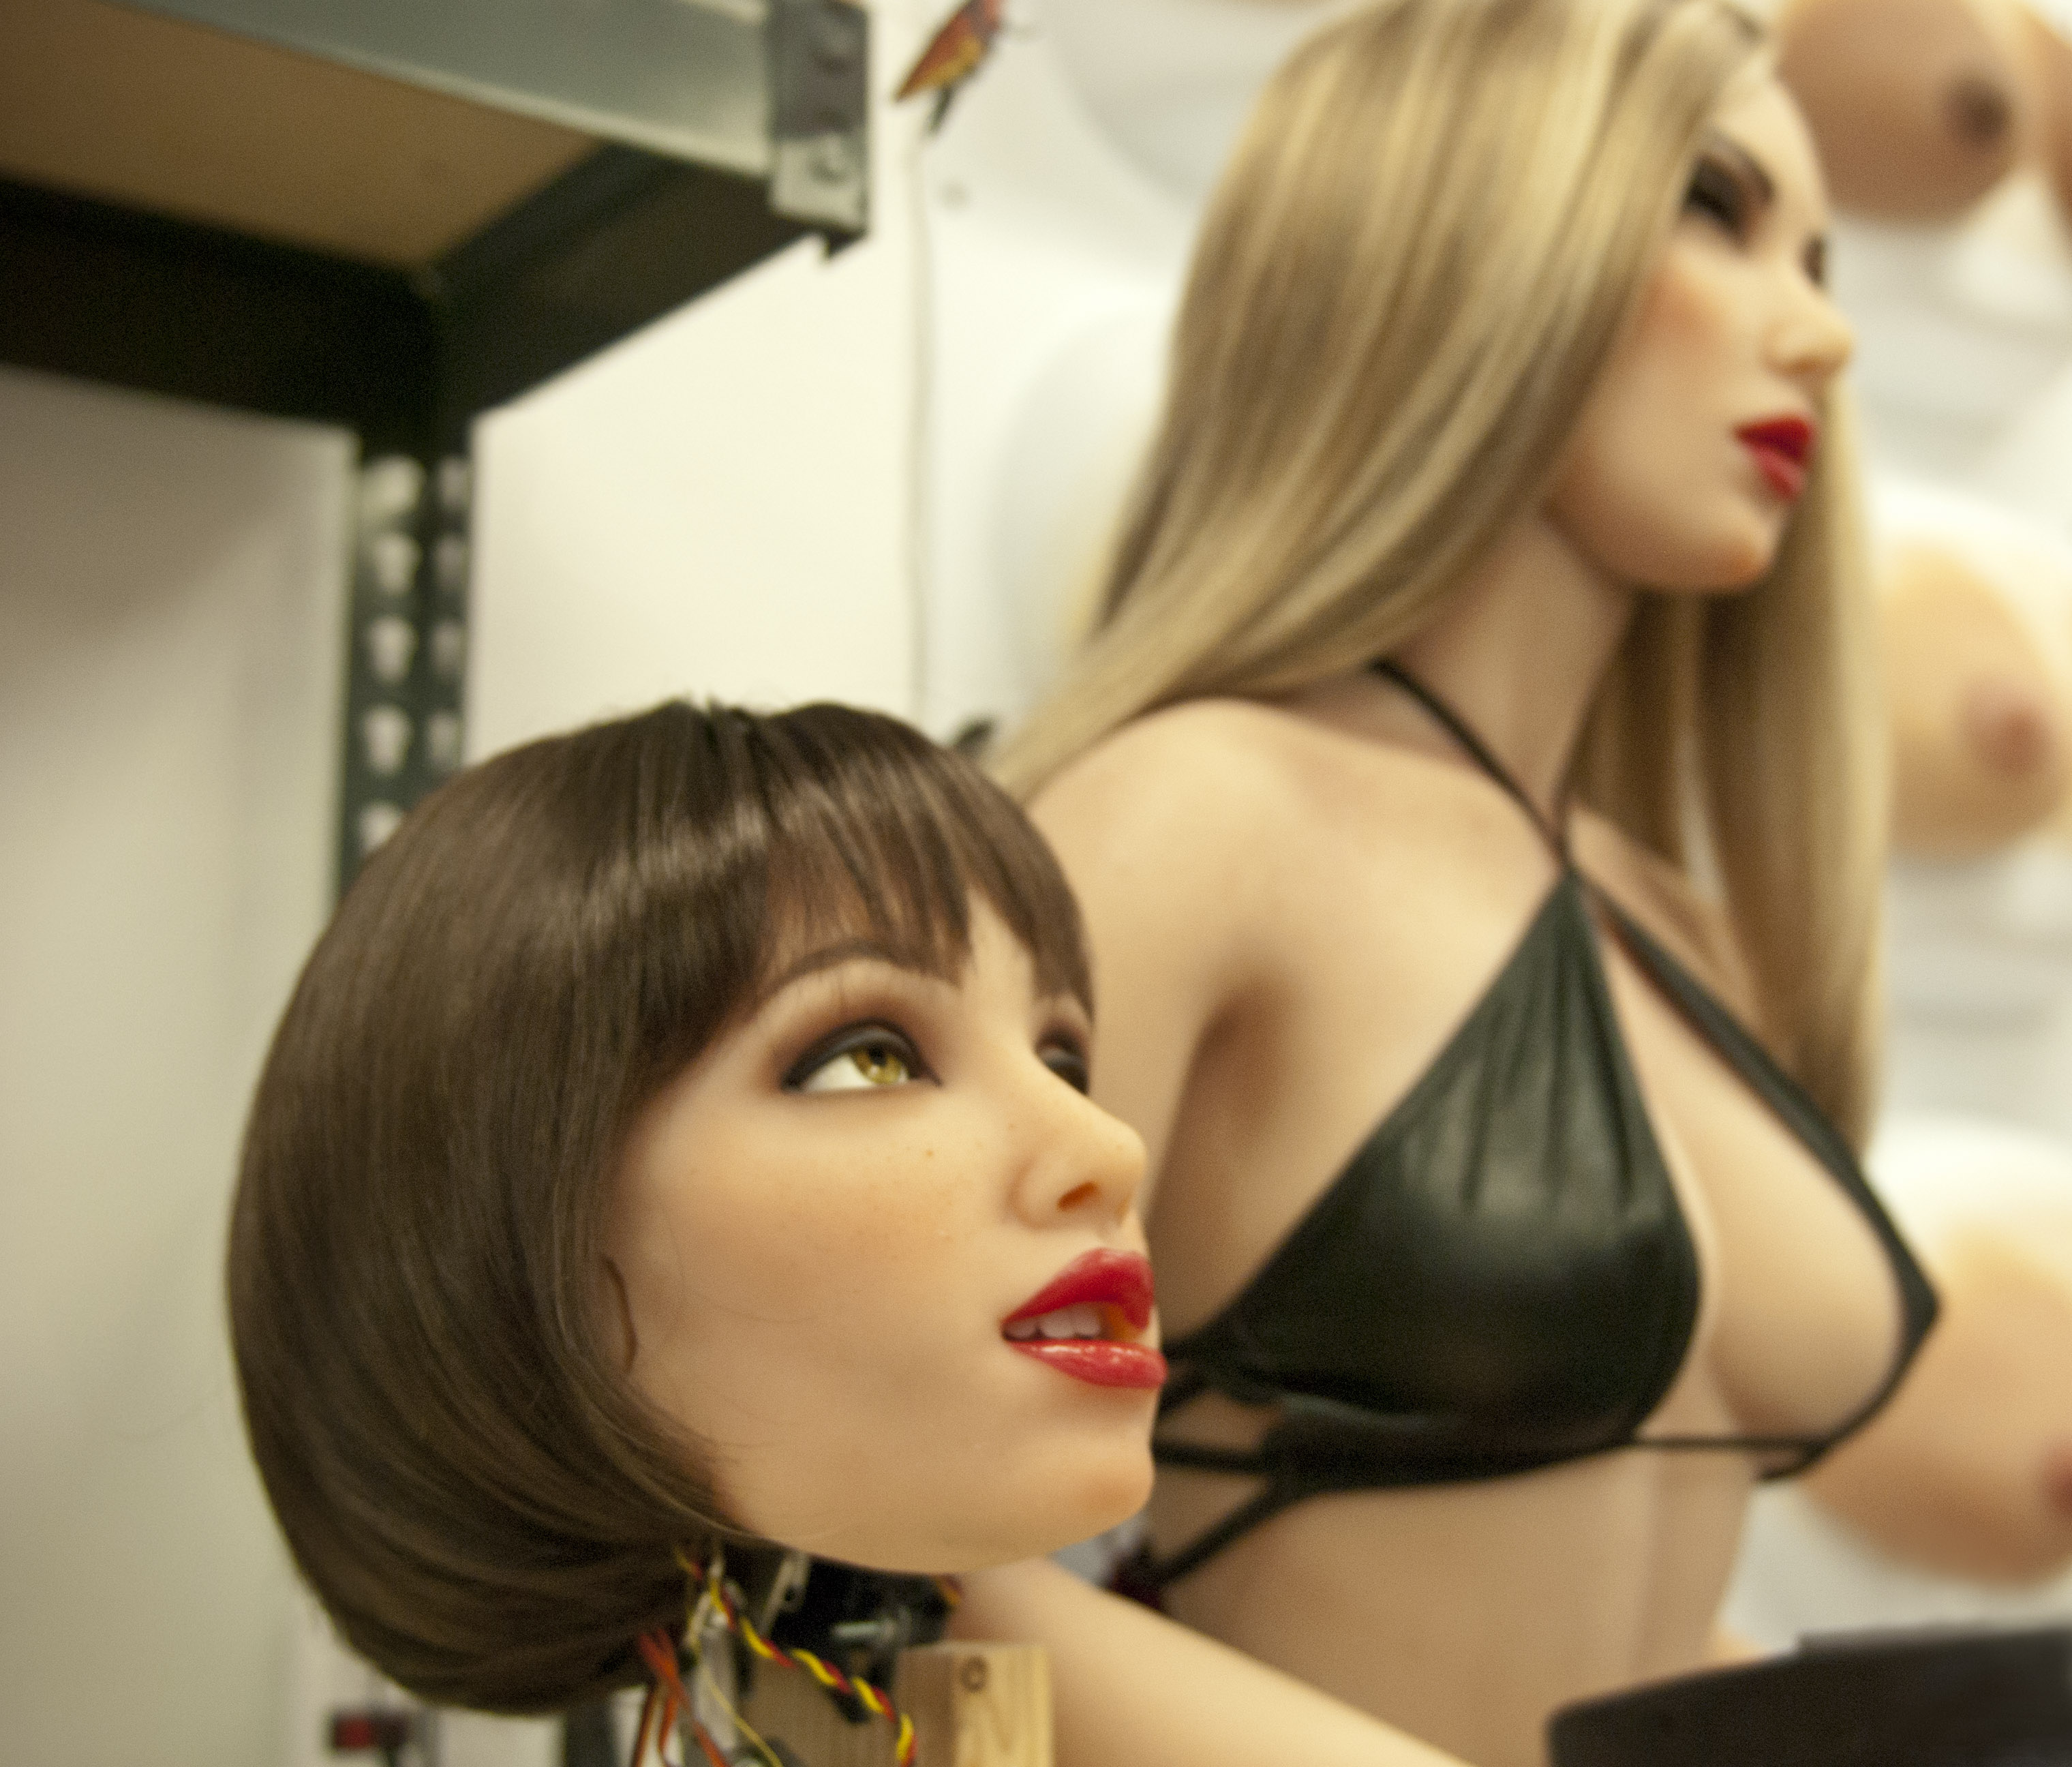 An almost-finished sex robot.